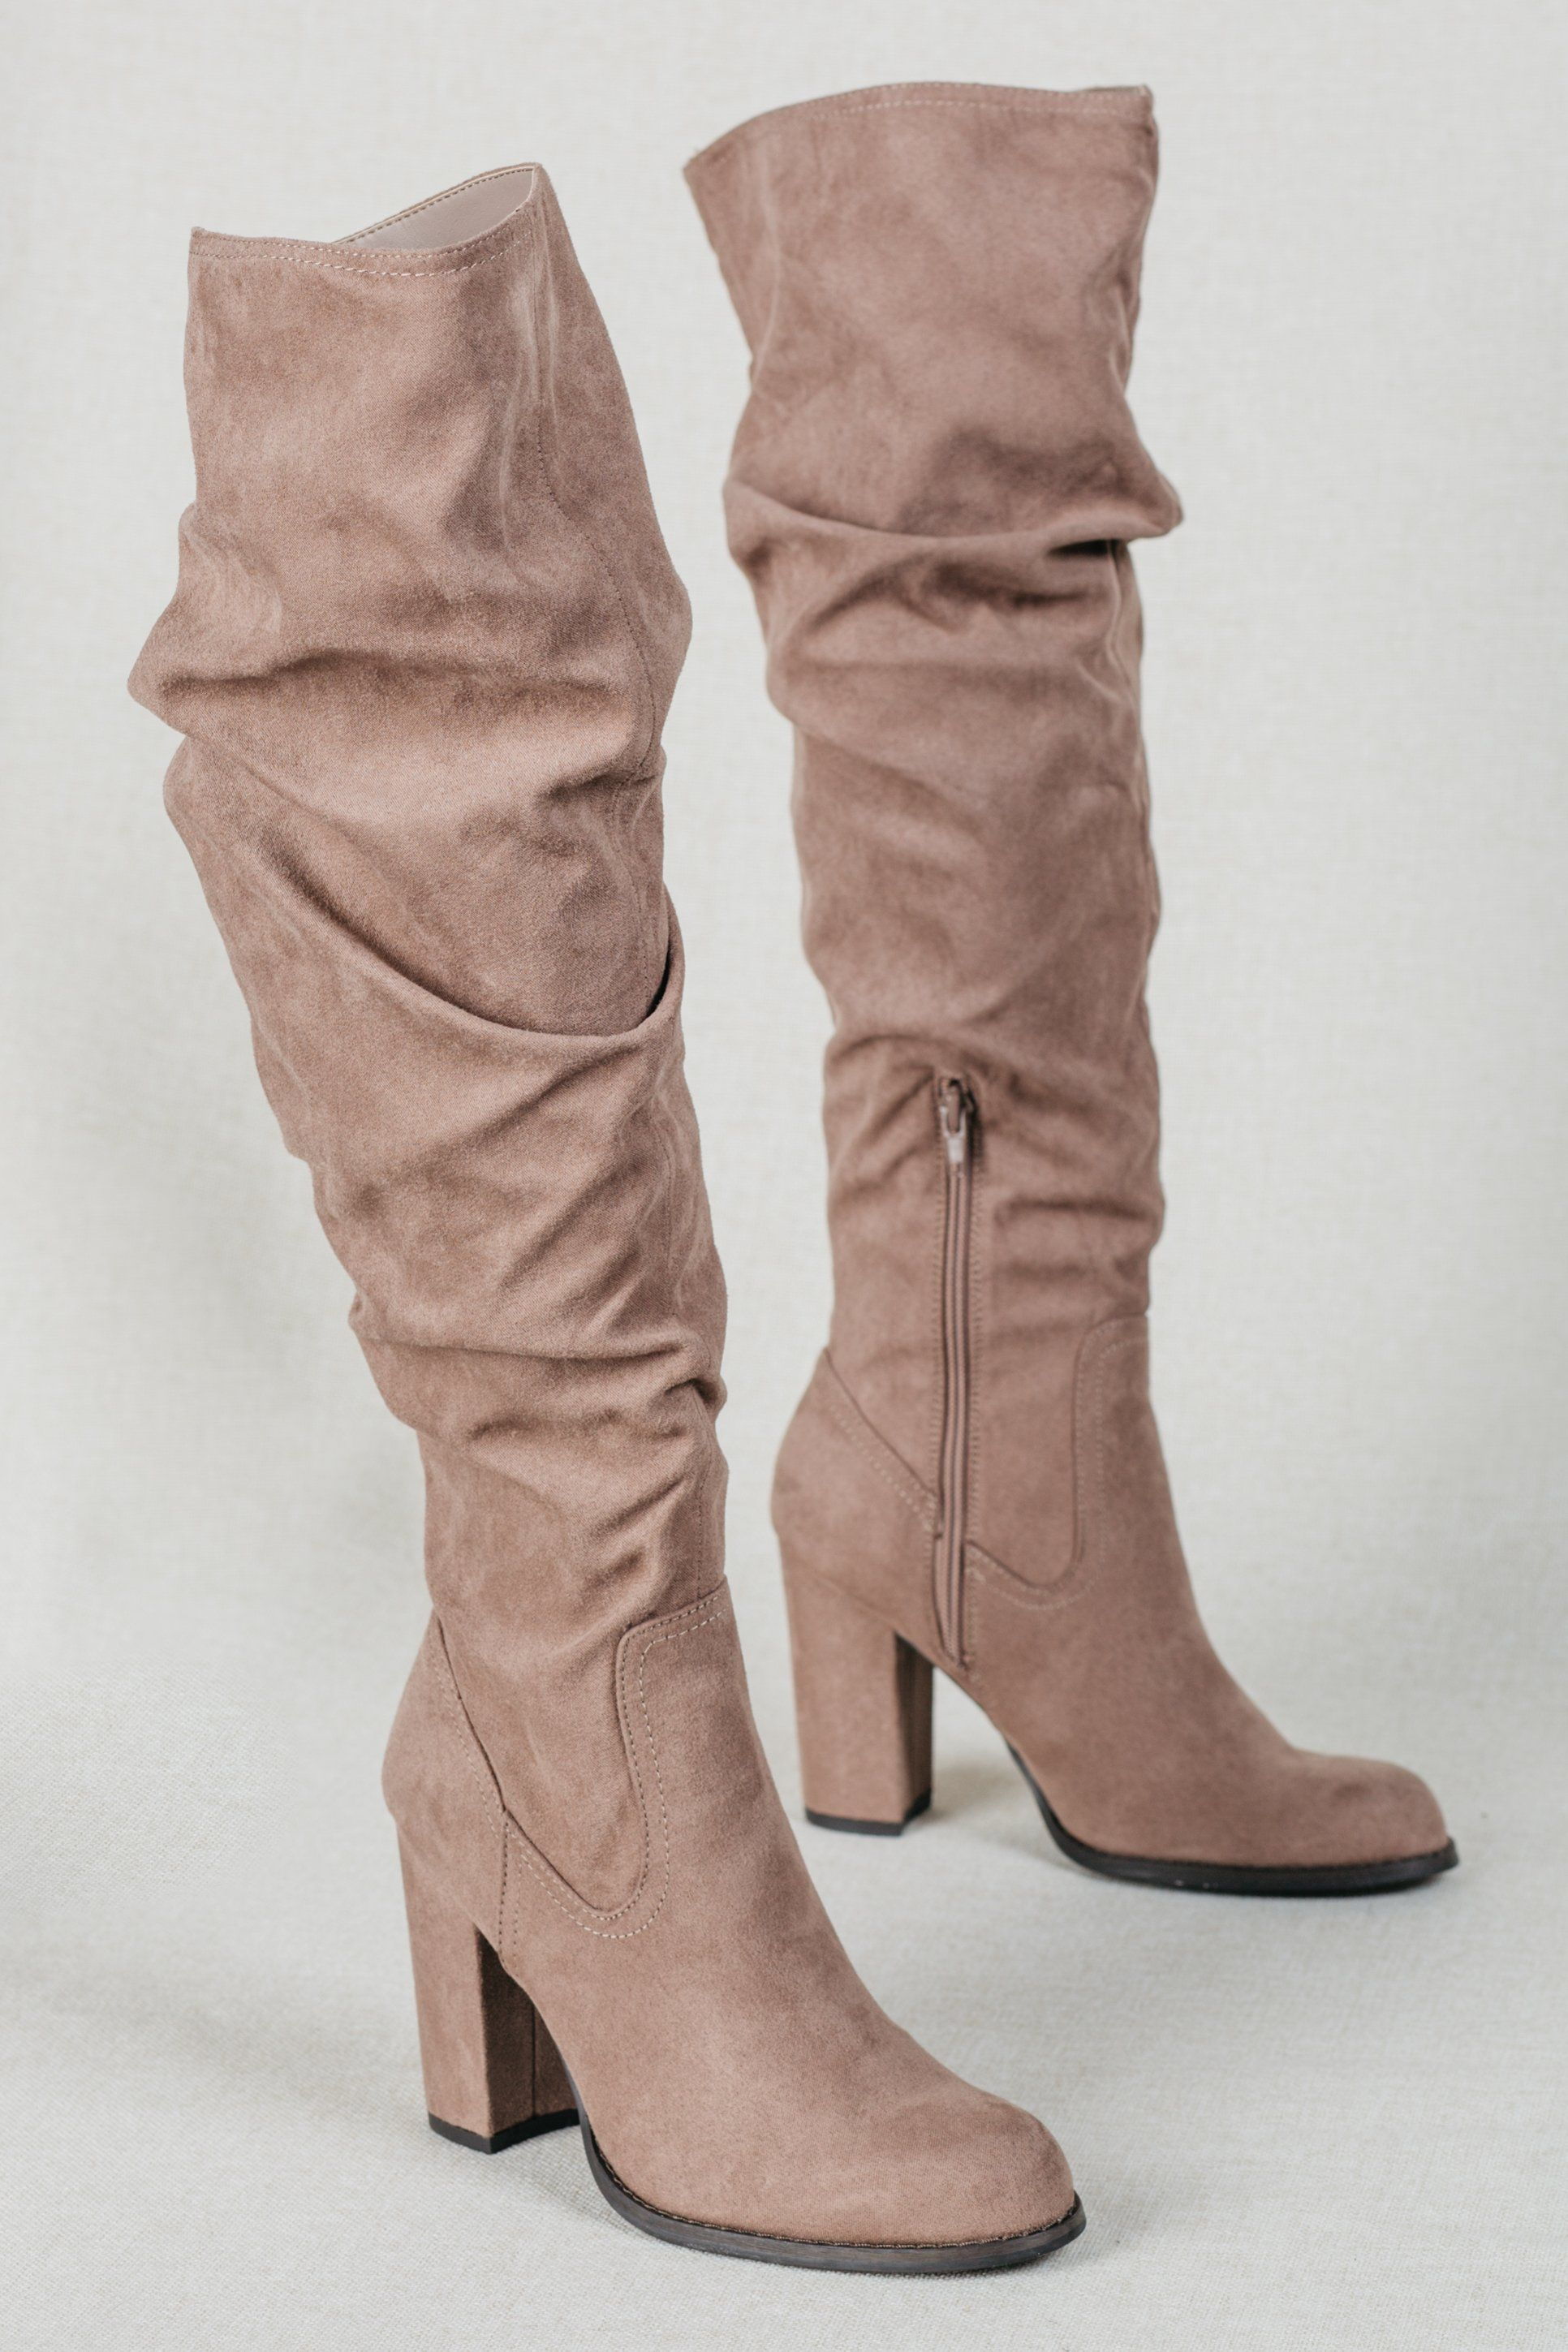 3dd27a11641 Cinder Boots | outfits in 2019 | Boots, Shoes, High heel boots